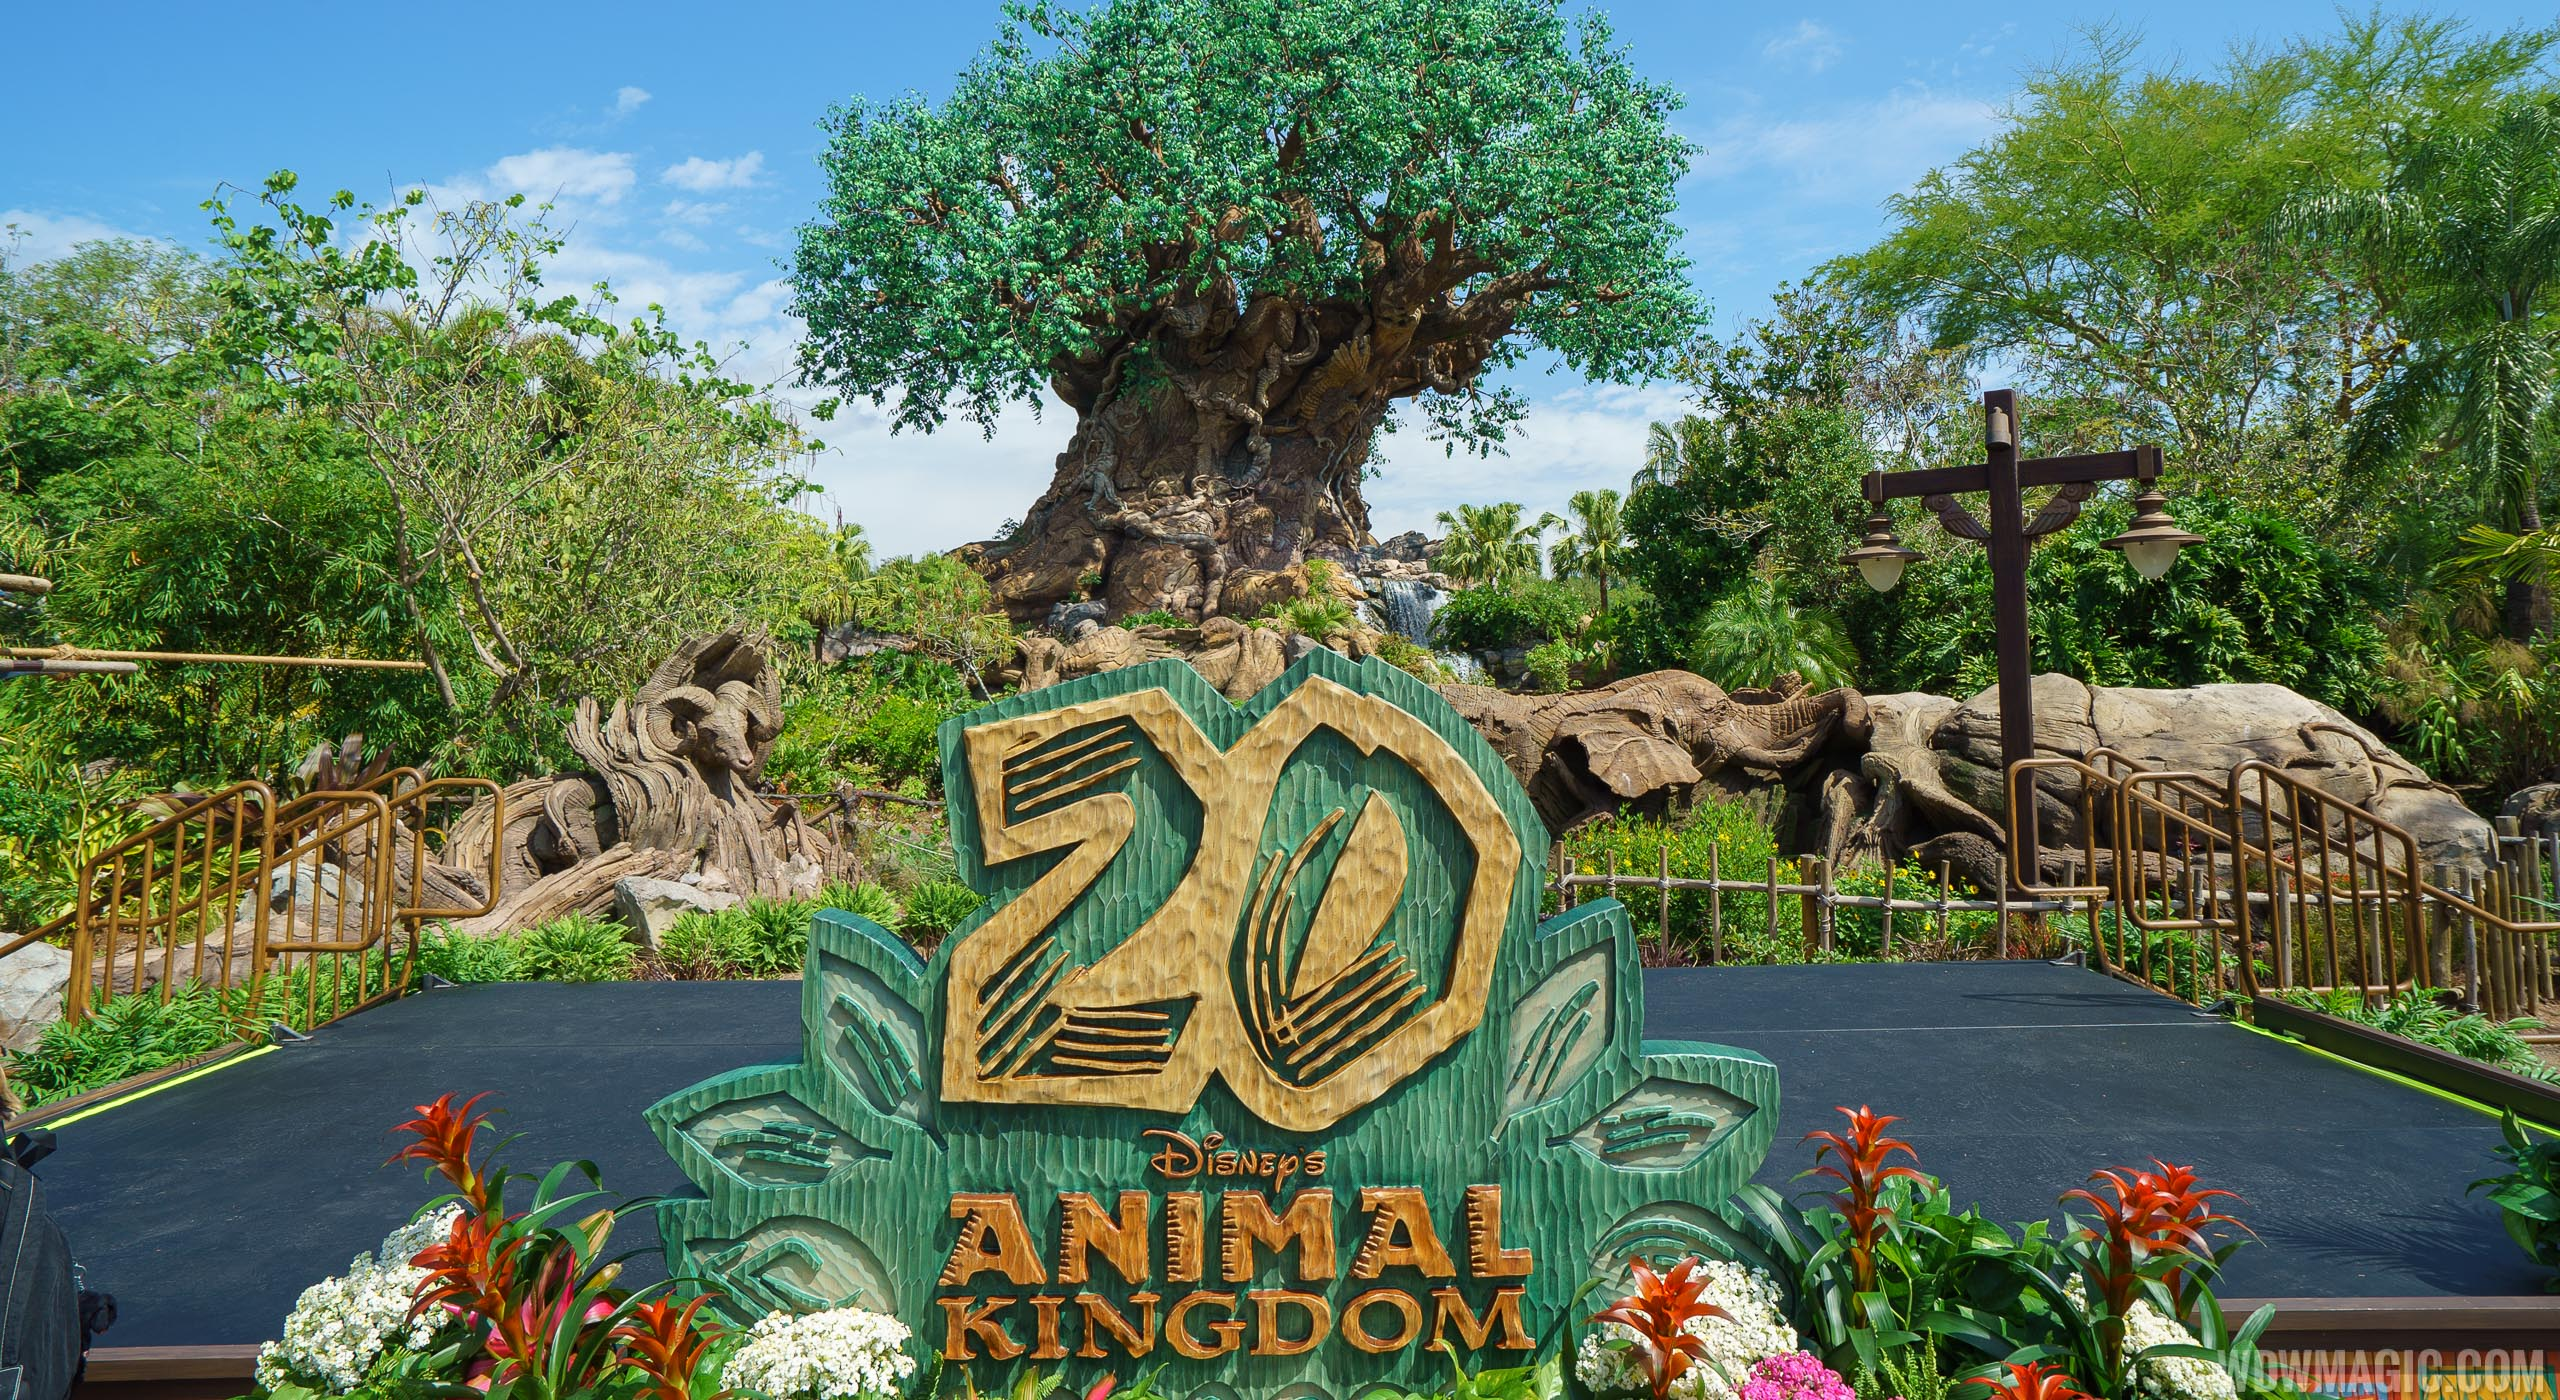 Disney's Animal Kingdom celebrates its 20th anniversary